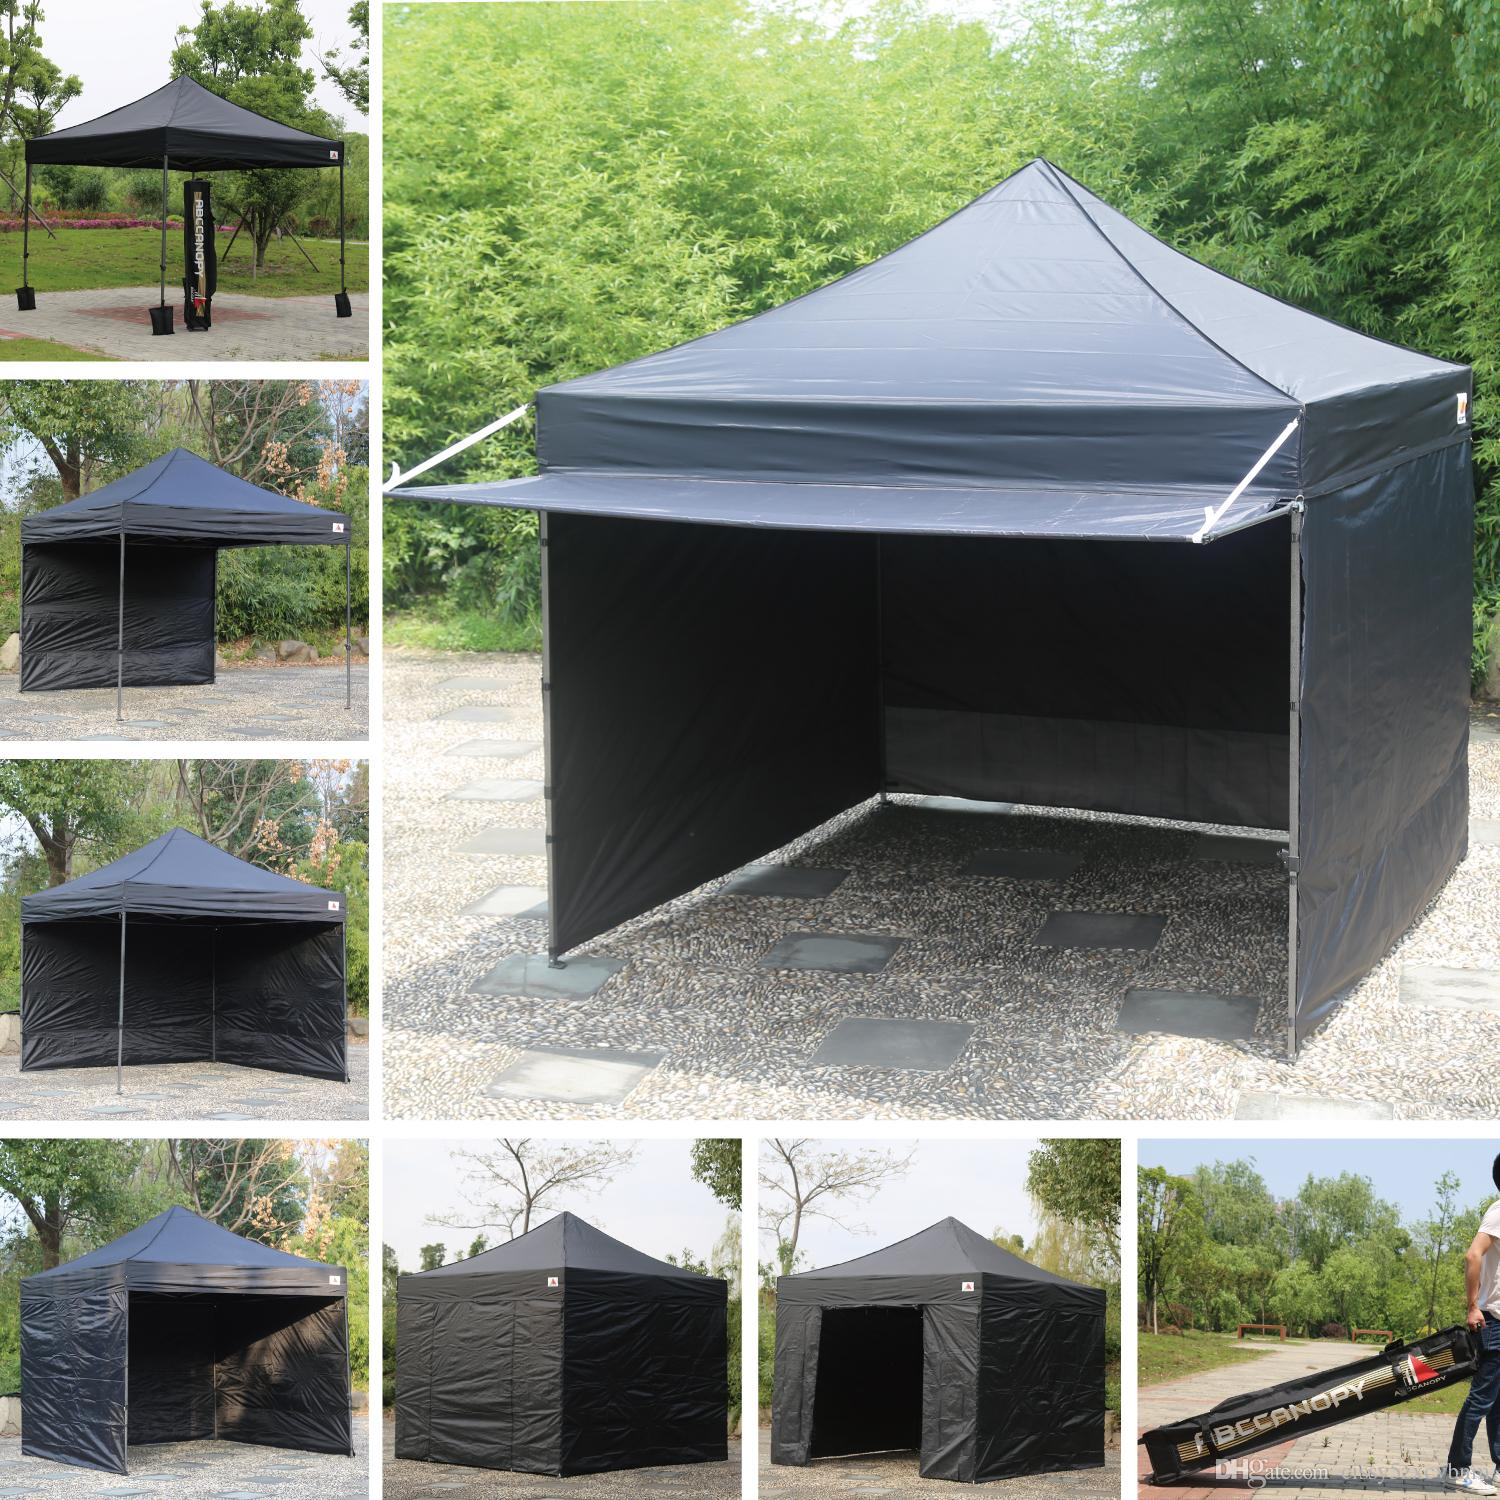 2018 10x10 Abccanopy Easy Pop Up Canopy Tent Instant Shelter Deluxe Portable Market Awning Black From Cissy5zxcvbnm 24116